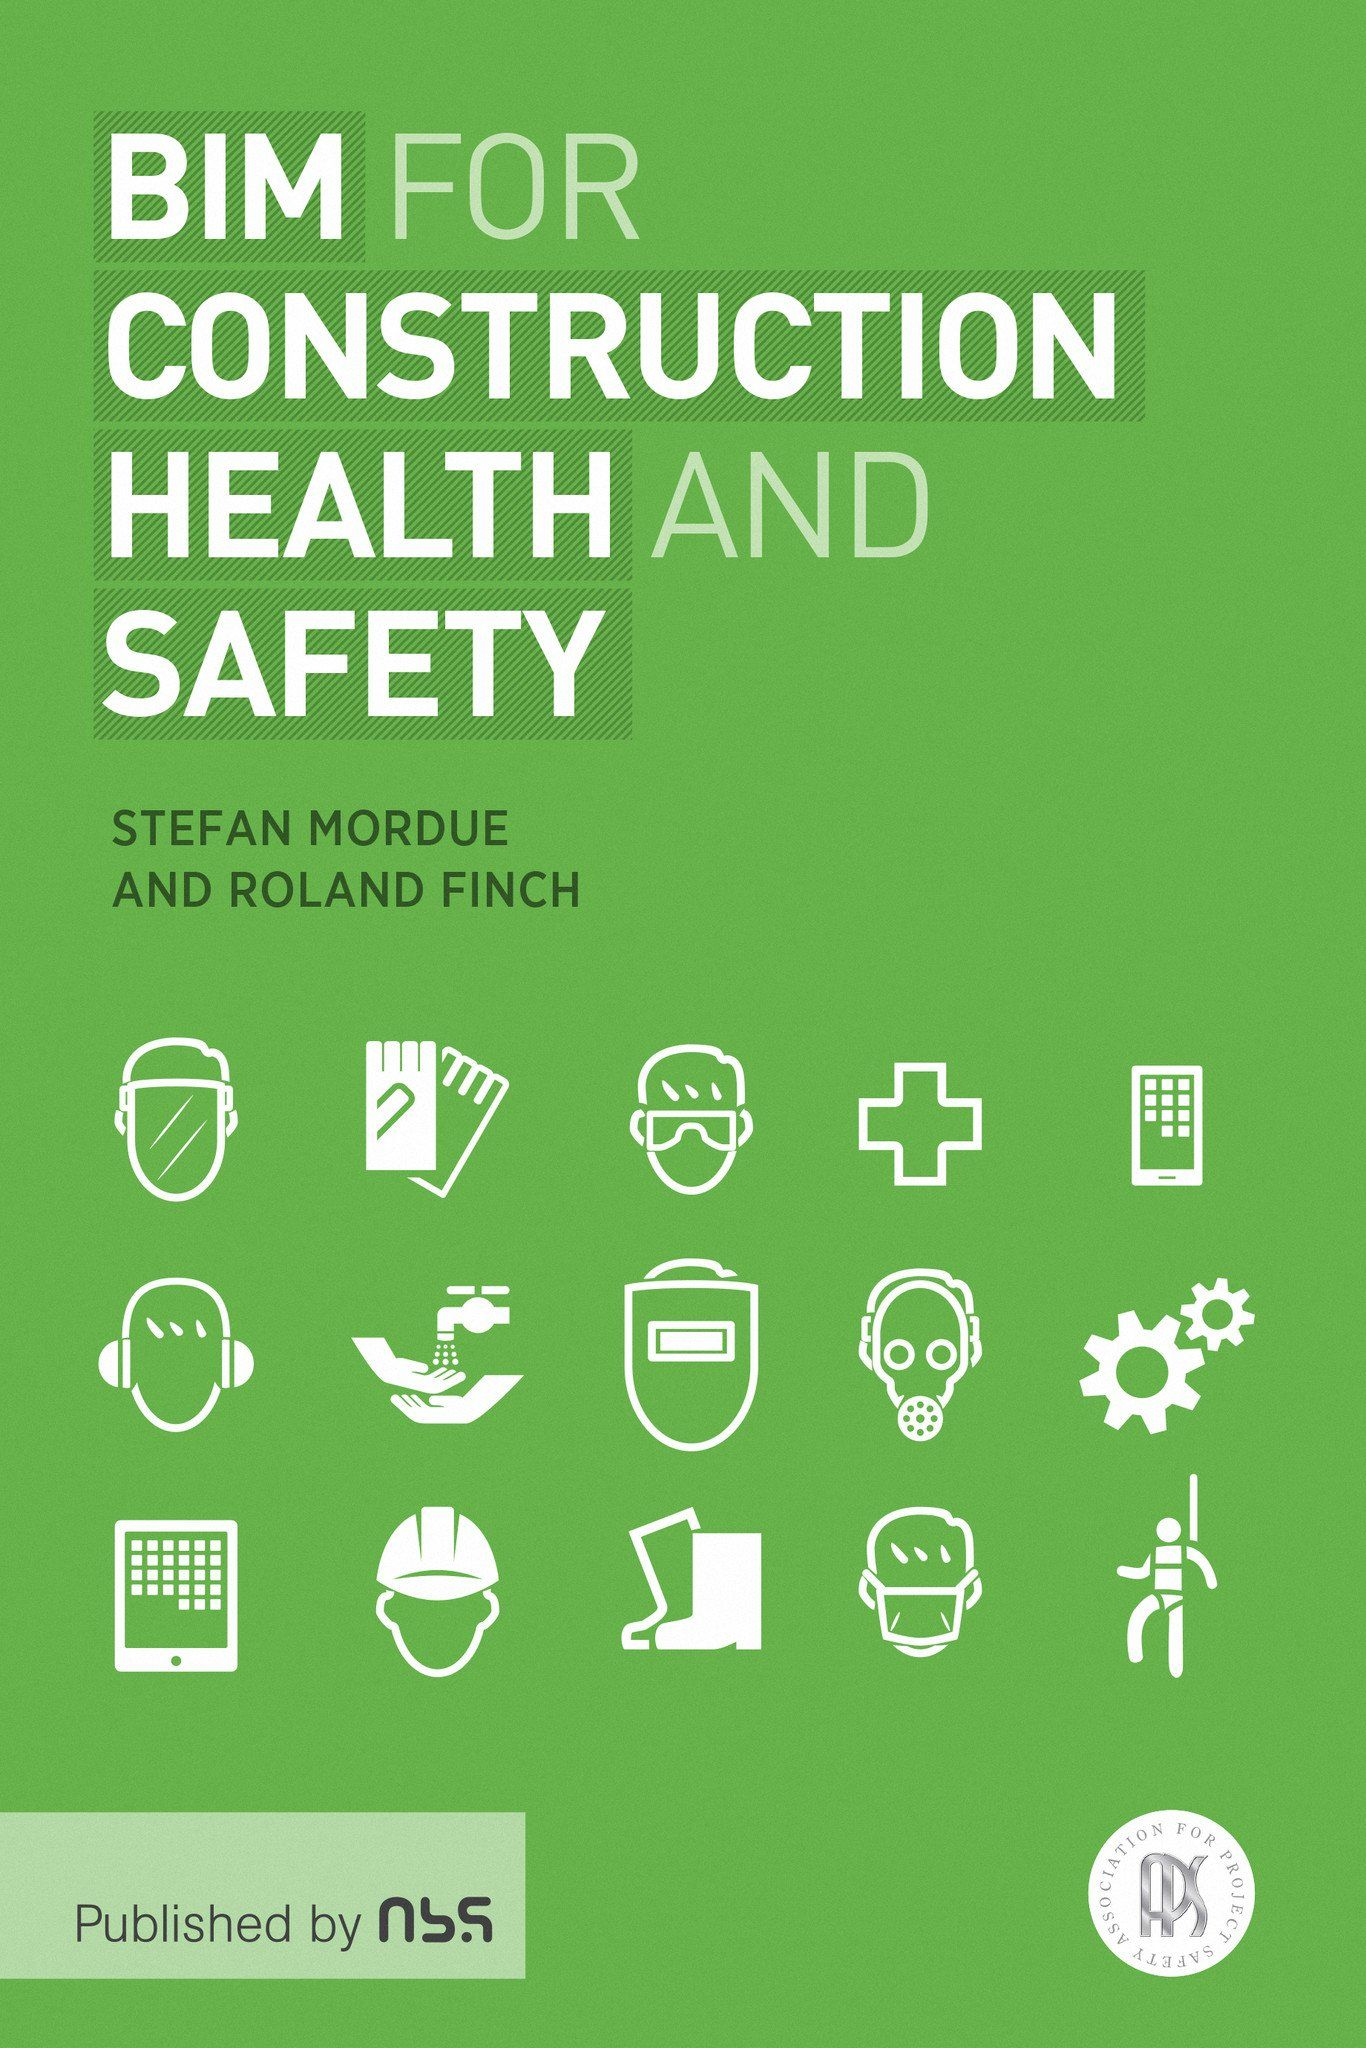 Bim for construction health and safety pdf riba bookshops ebooks bim for construction health and safety pdf riba bookshops ebooks fandeluxe Choice Image